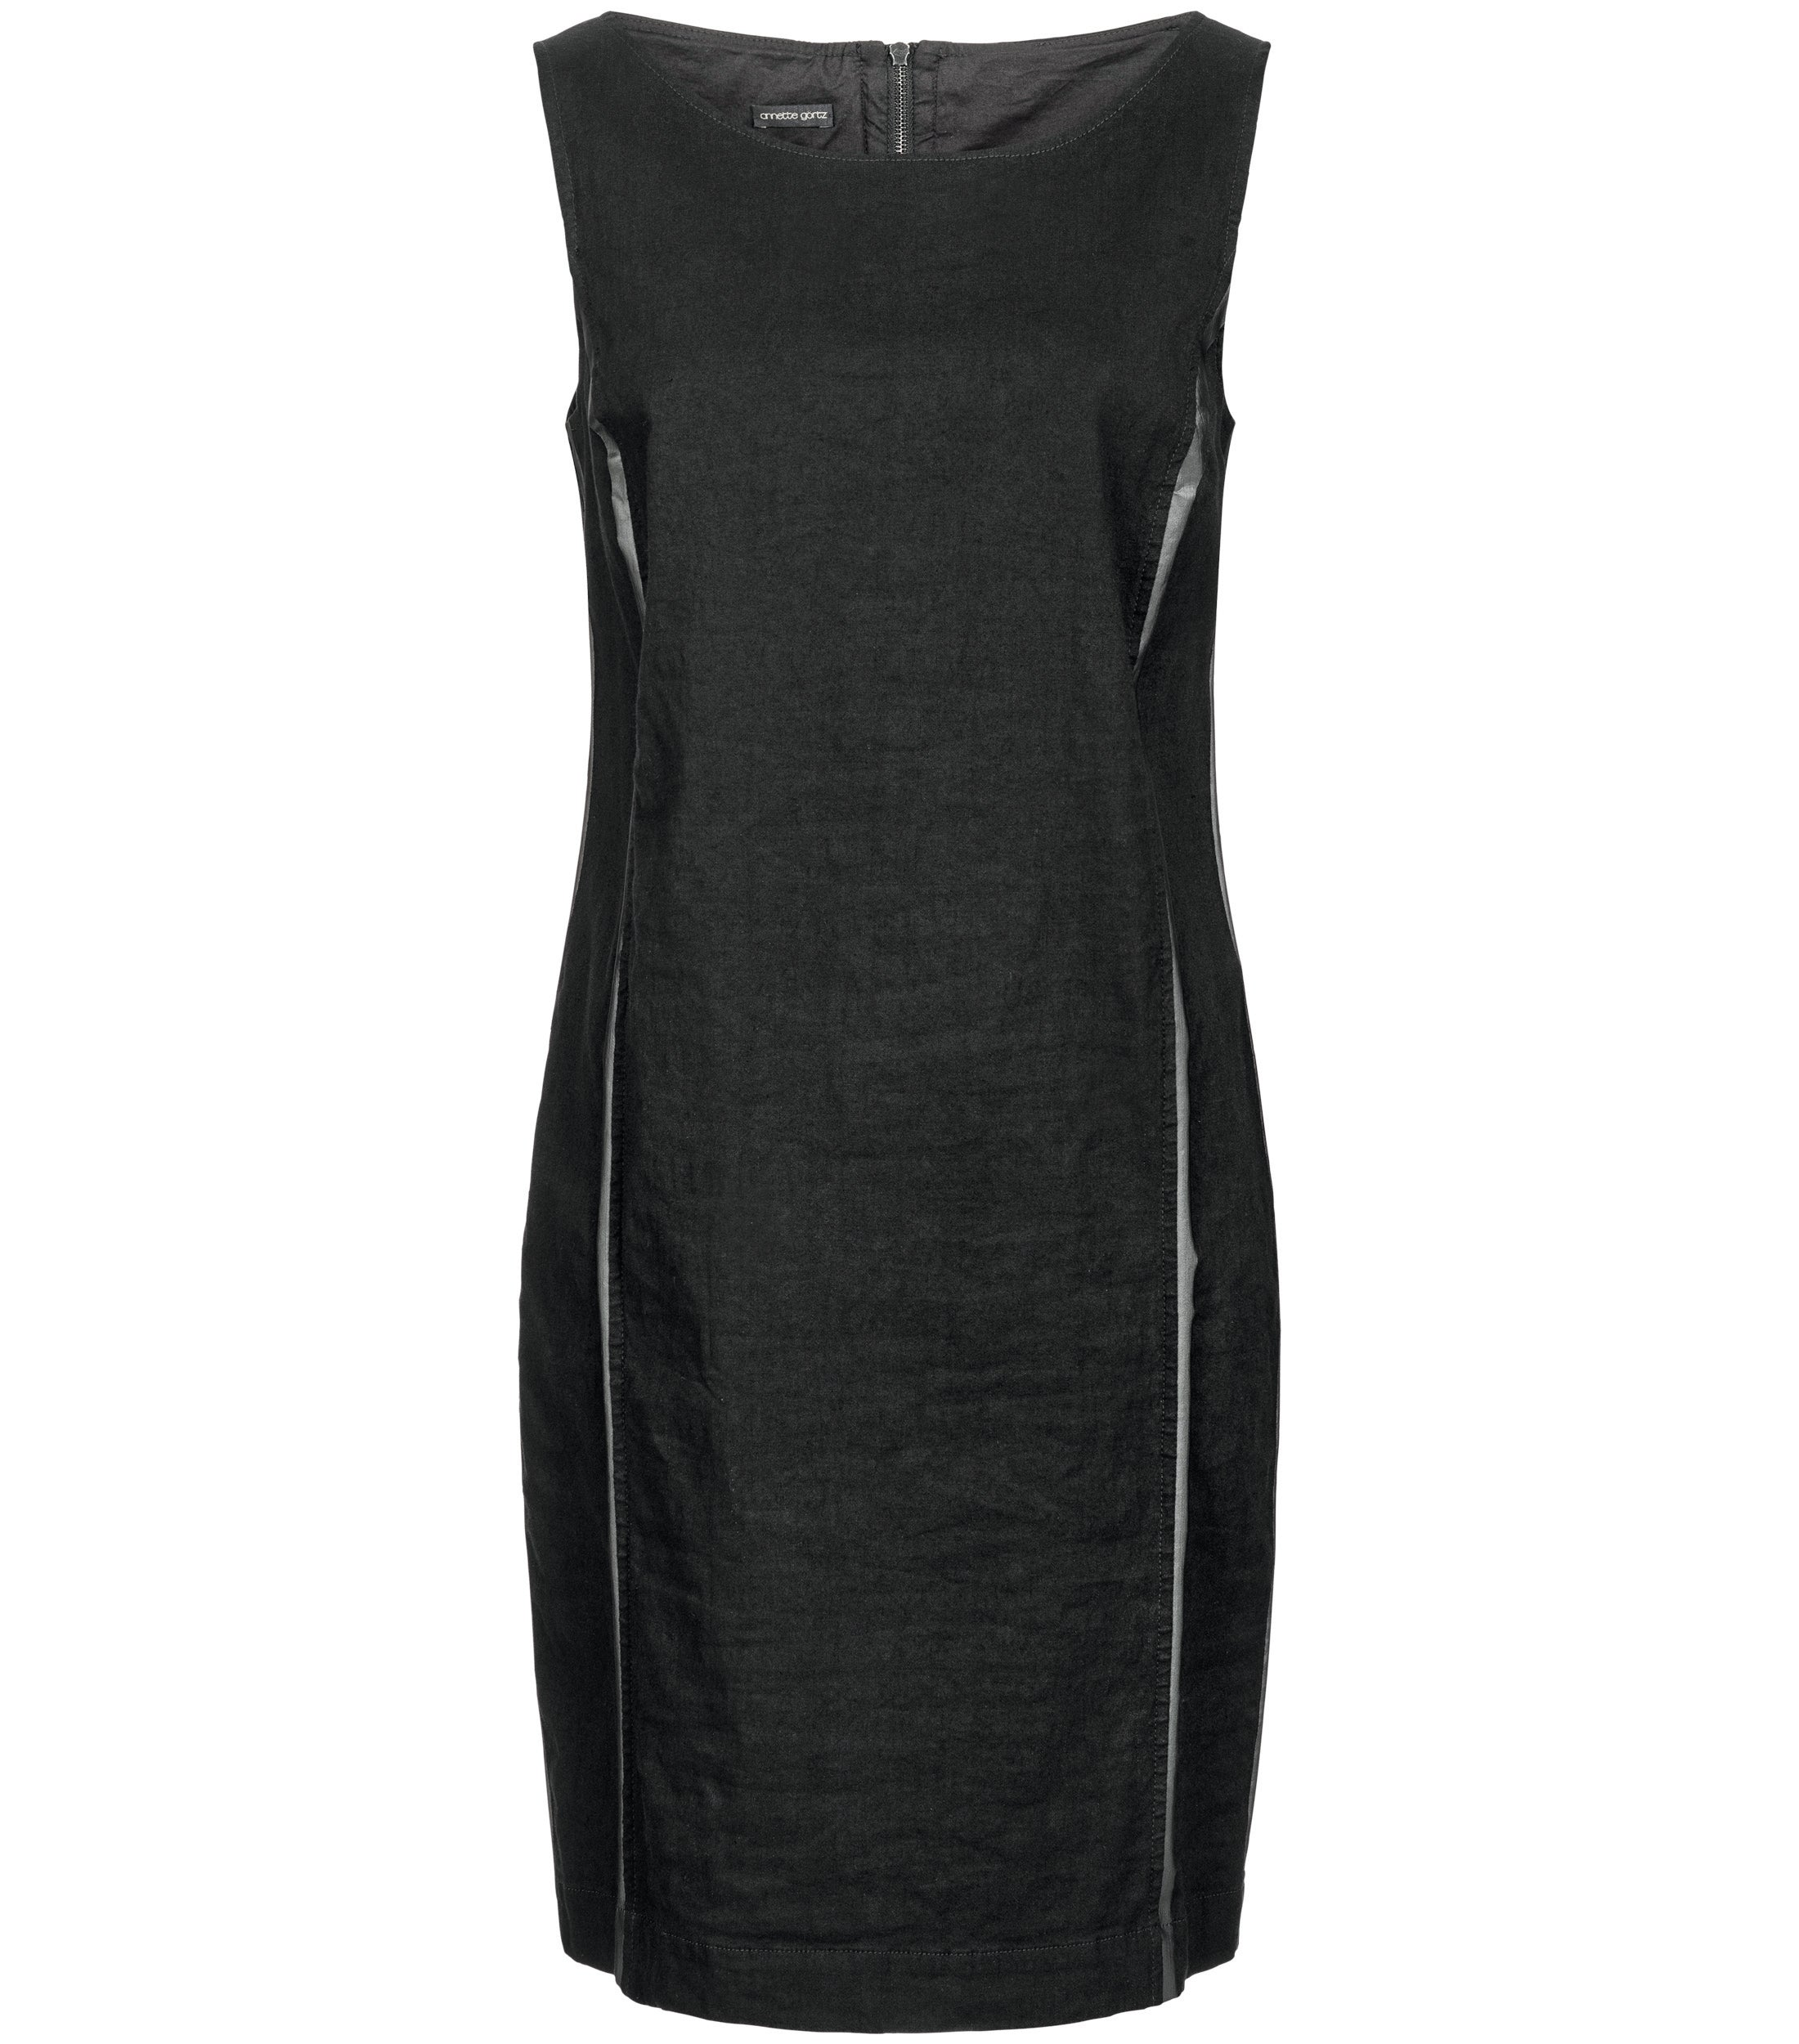 Annette Gortz Star Dress at Jophiel